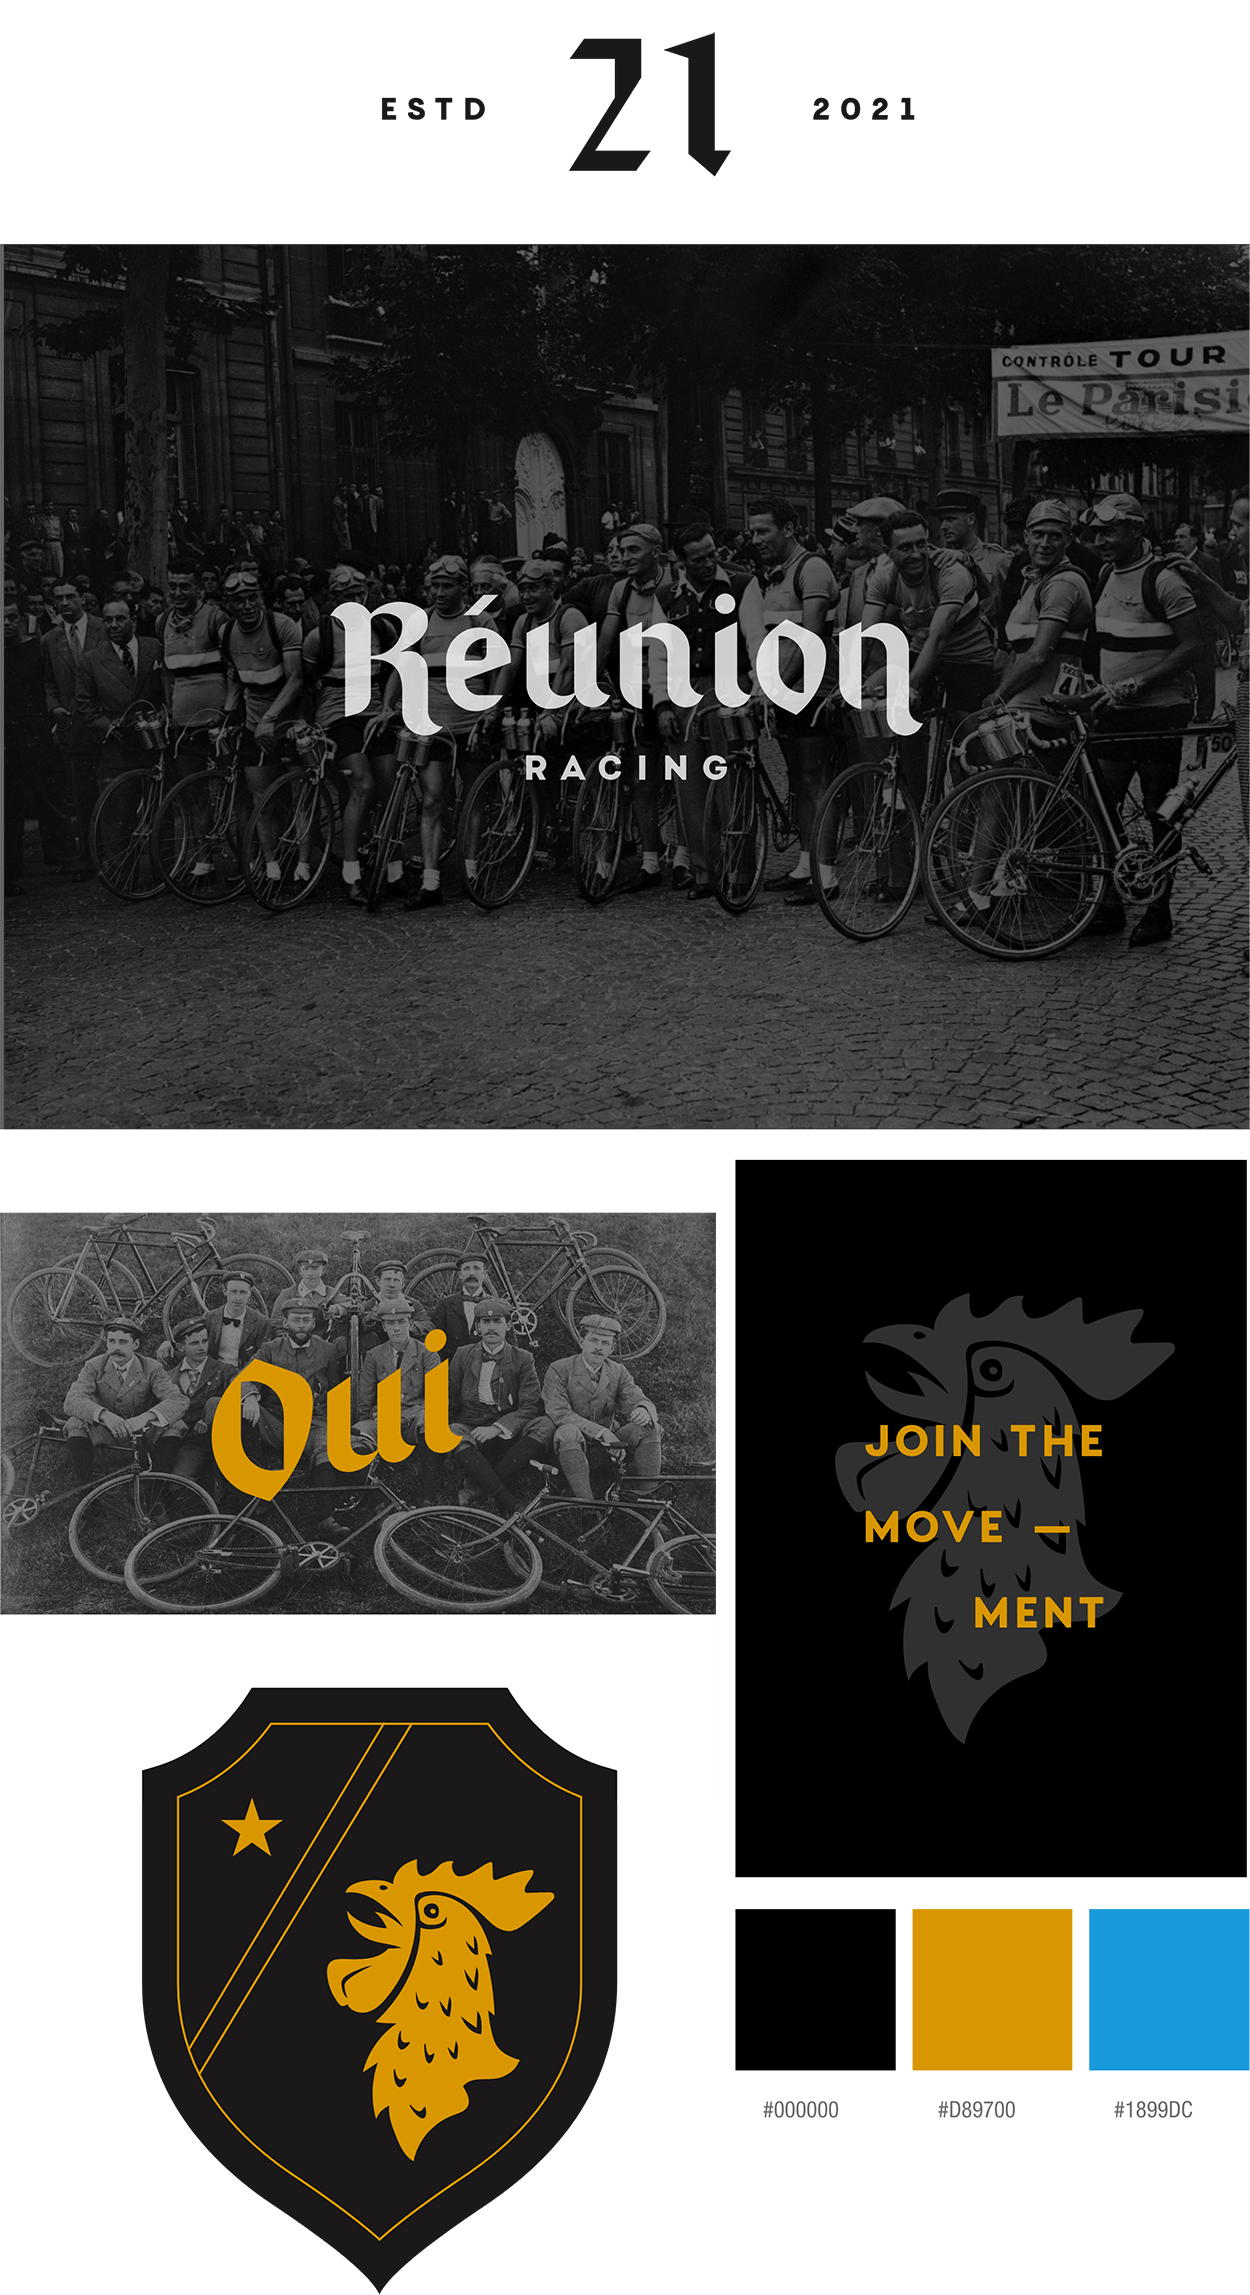 https://www.cultist.co/wp-content/uploads/2021/08/Reunion_collage_vert_1250.png